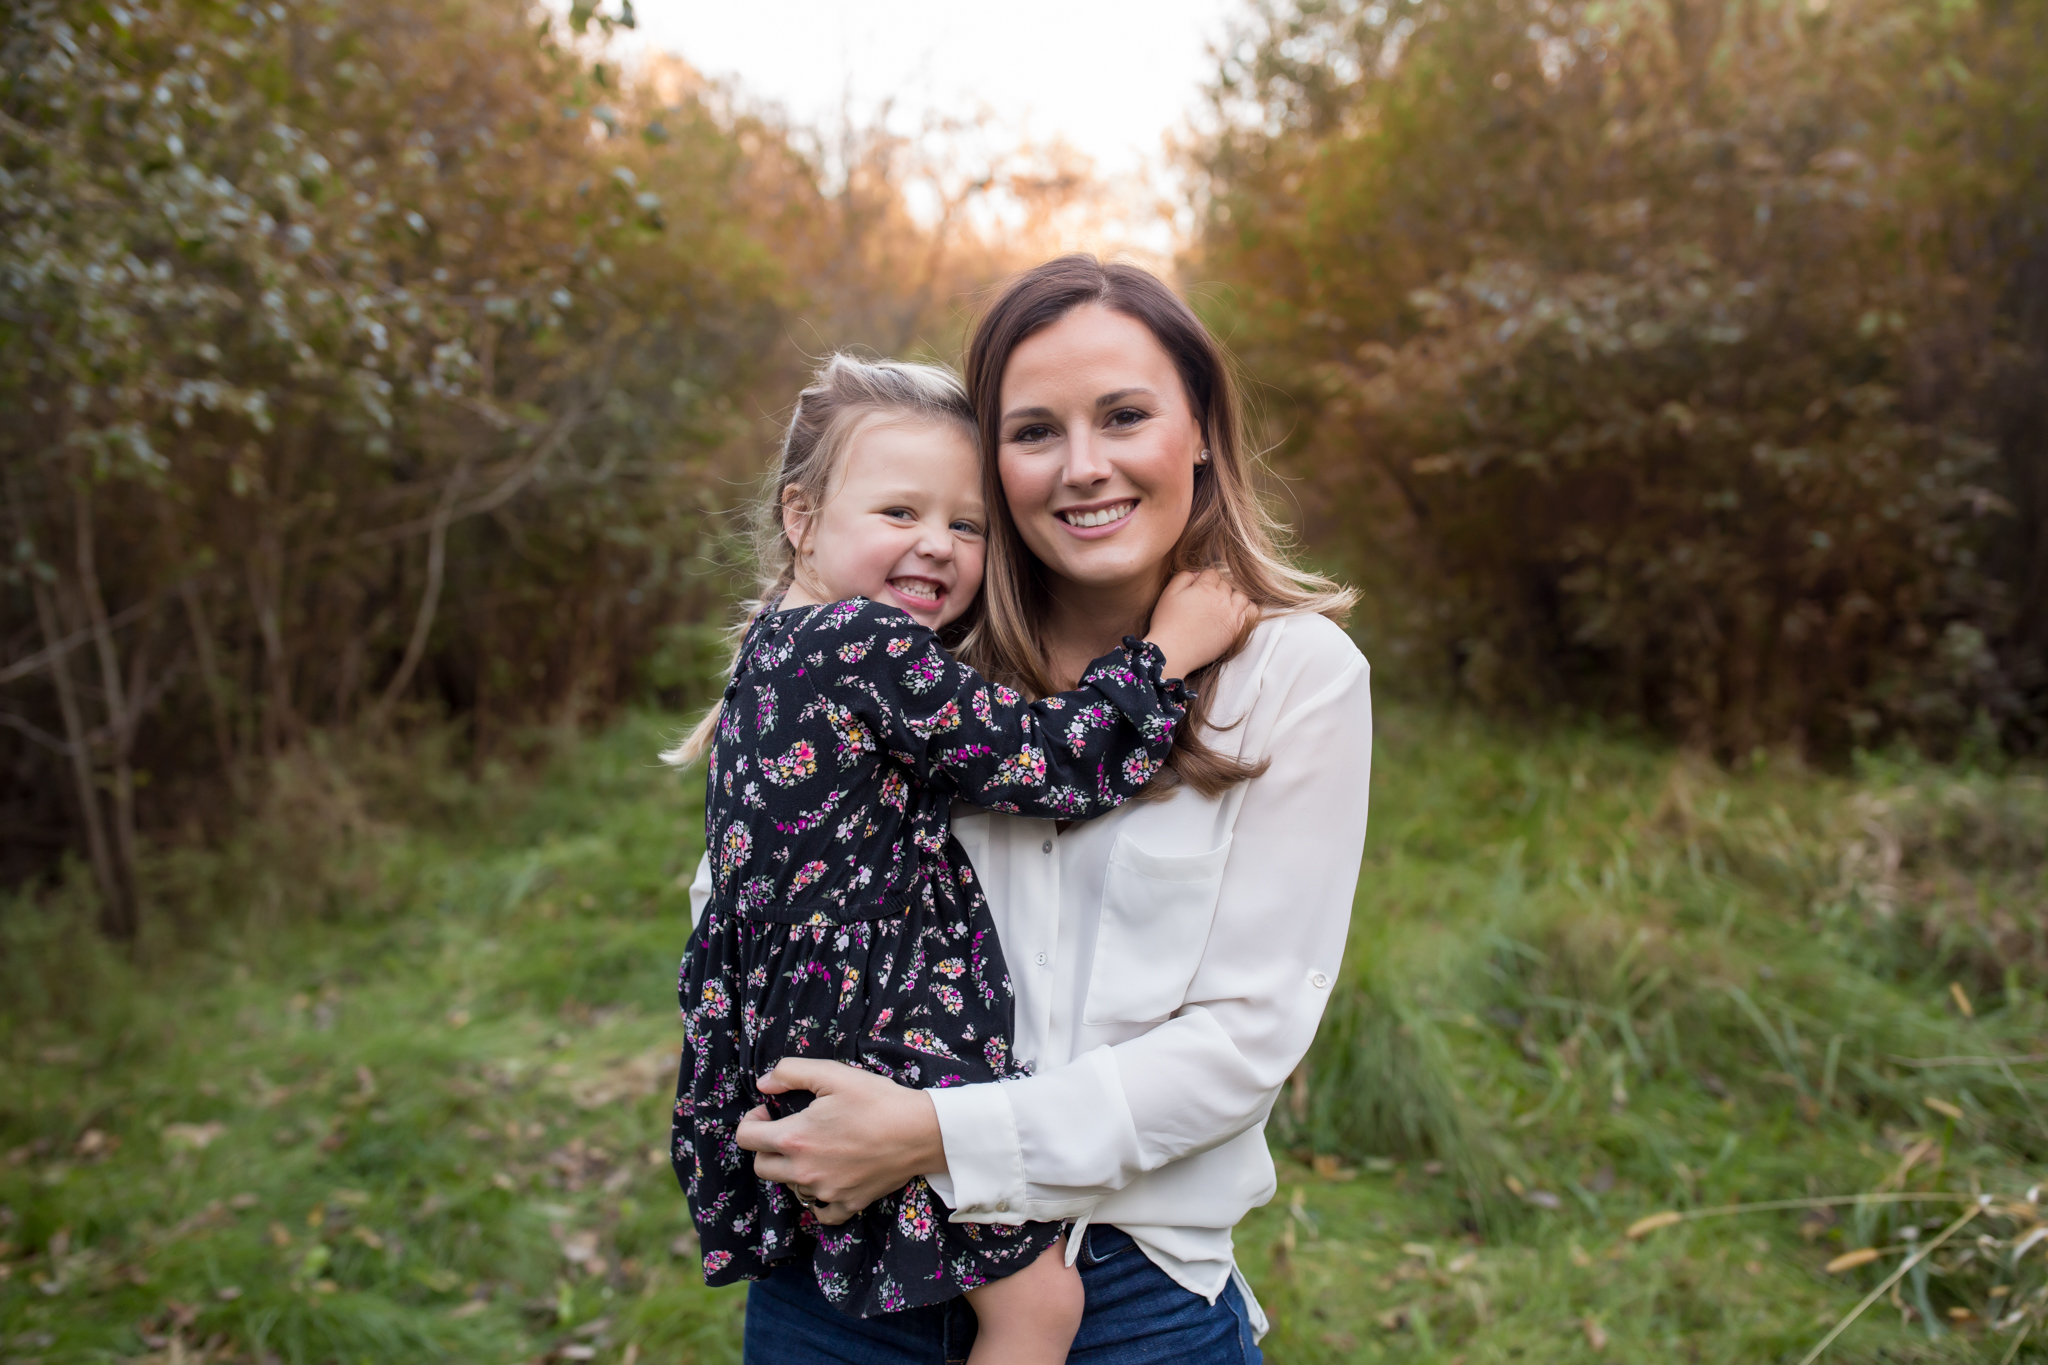 Hailey Family Fall Session, 2 kinds, family poses with young kids, Cara Peterson Photography Rockford IL-16.jpg